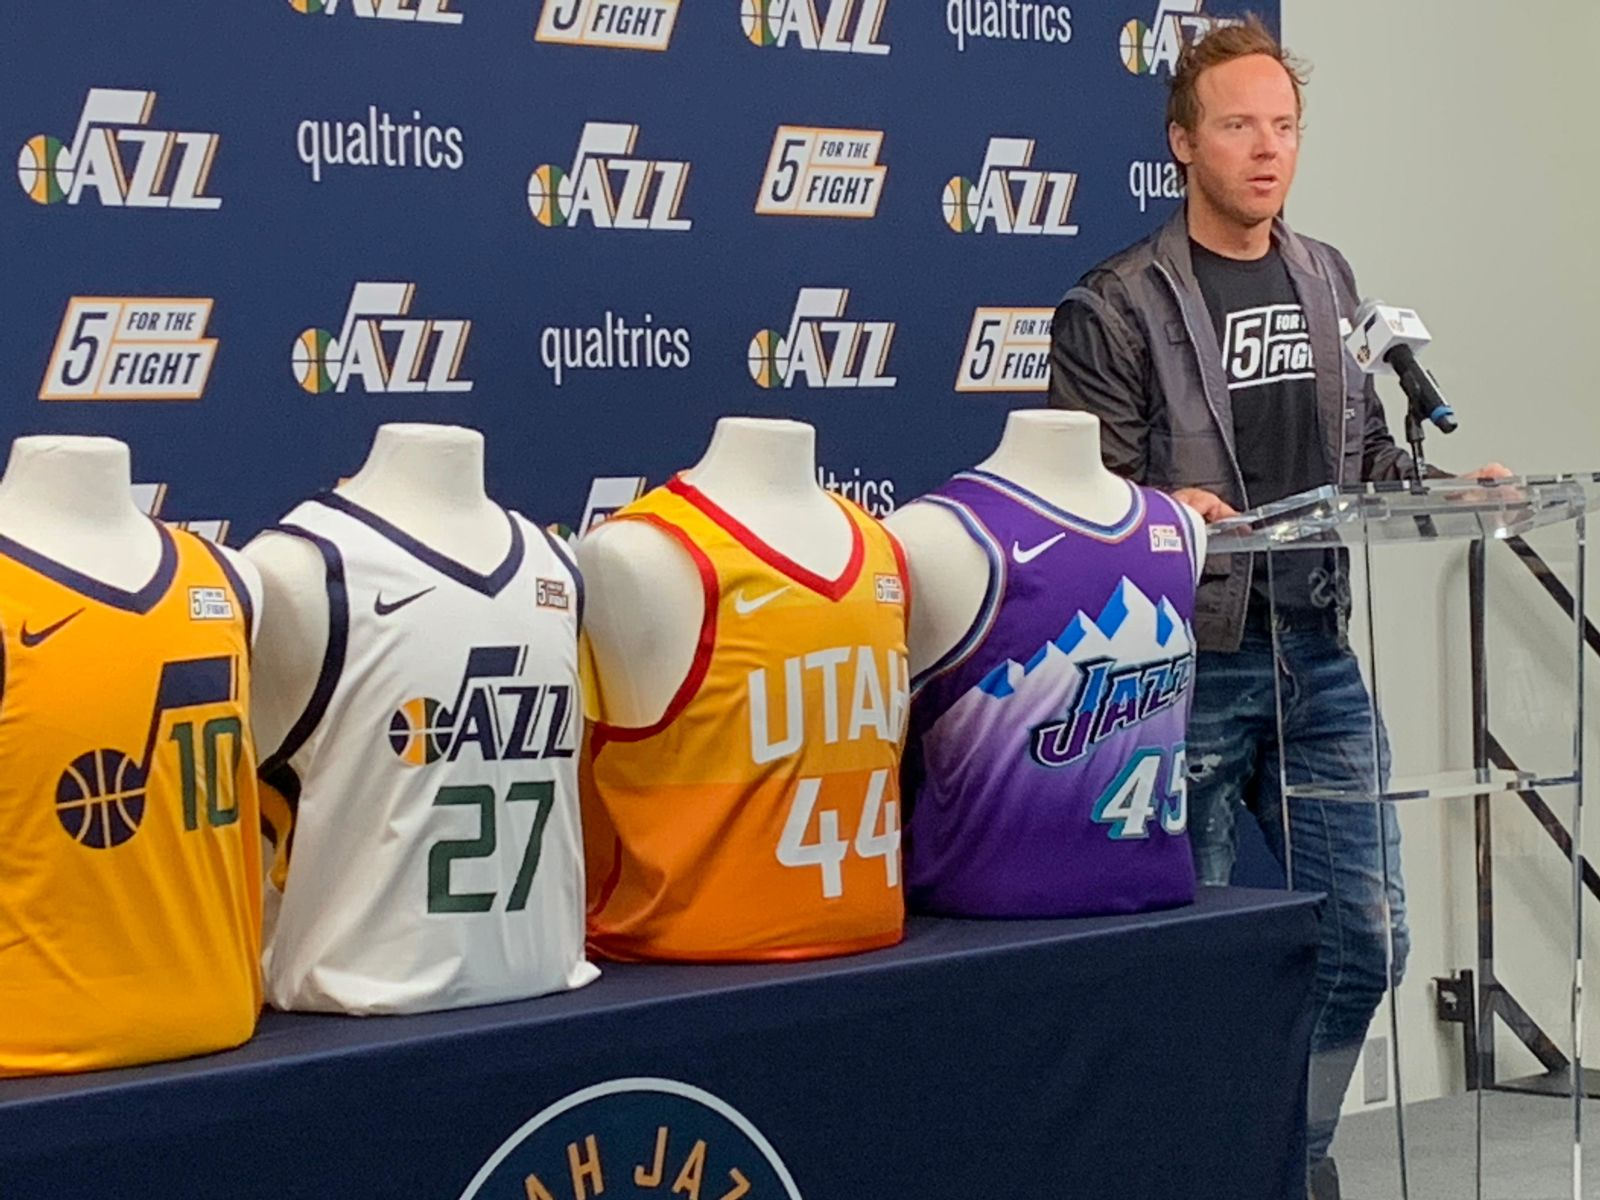 Ryan Smith, co-founder and CEO of Qualtrics, co-founder 5 For The Fight speaks at a press conference on Monday, October 21, 2019. (Photo: Adam Forgie, KUTV)